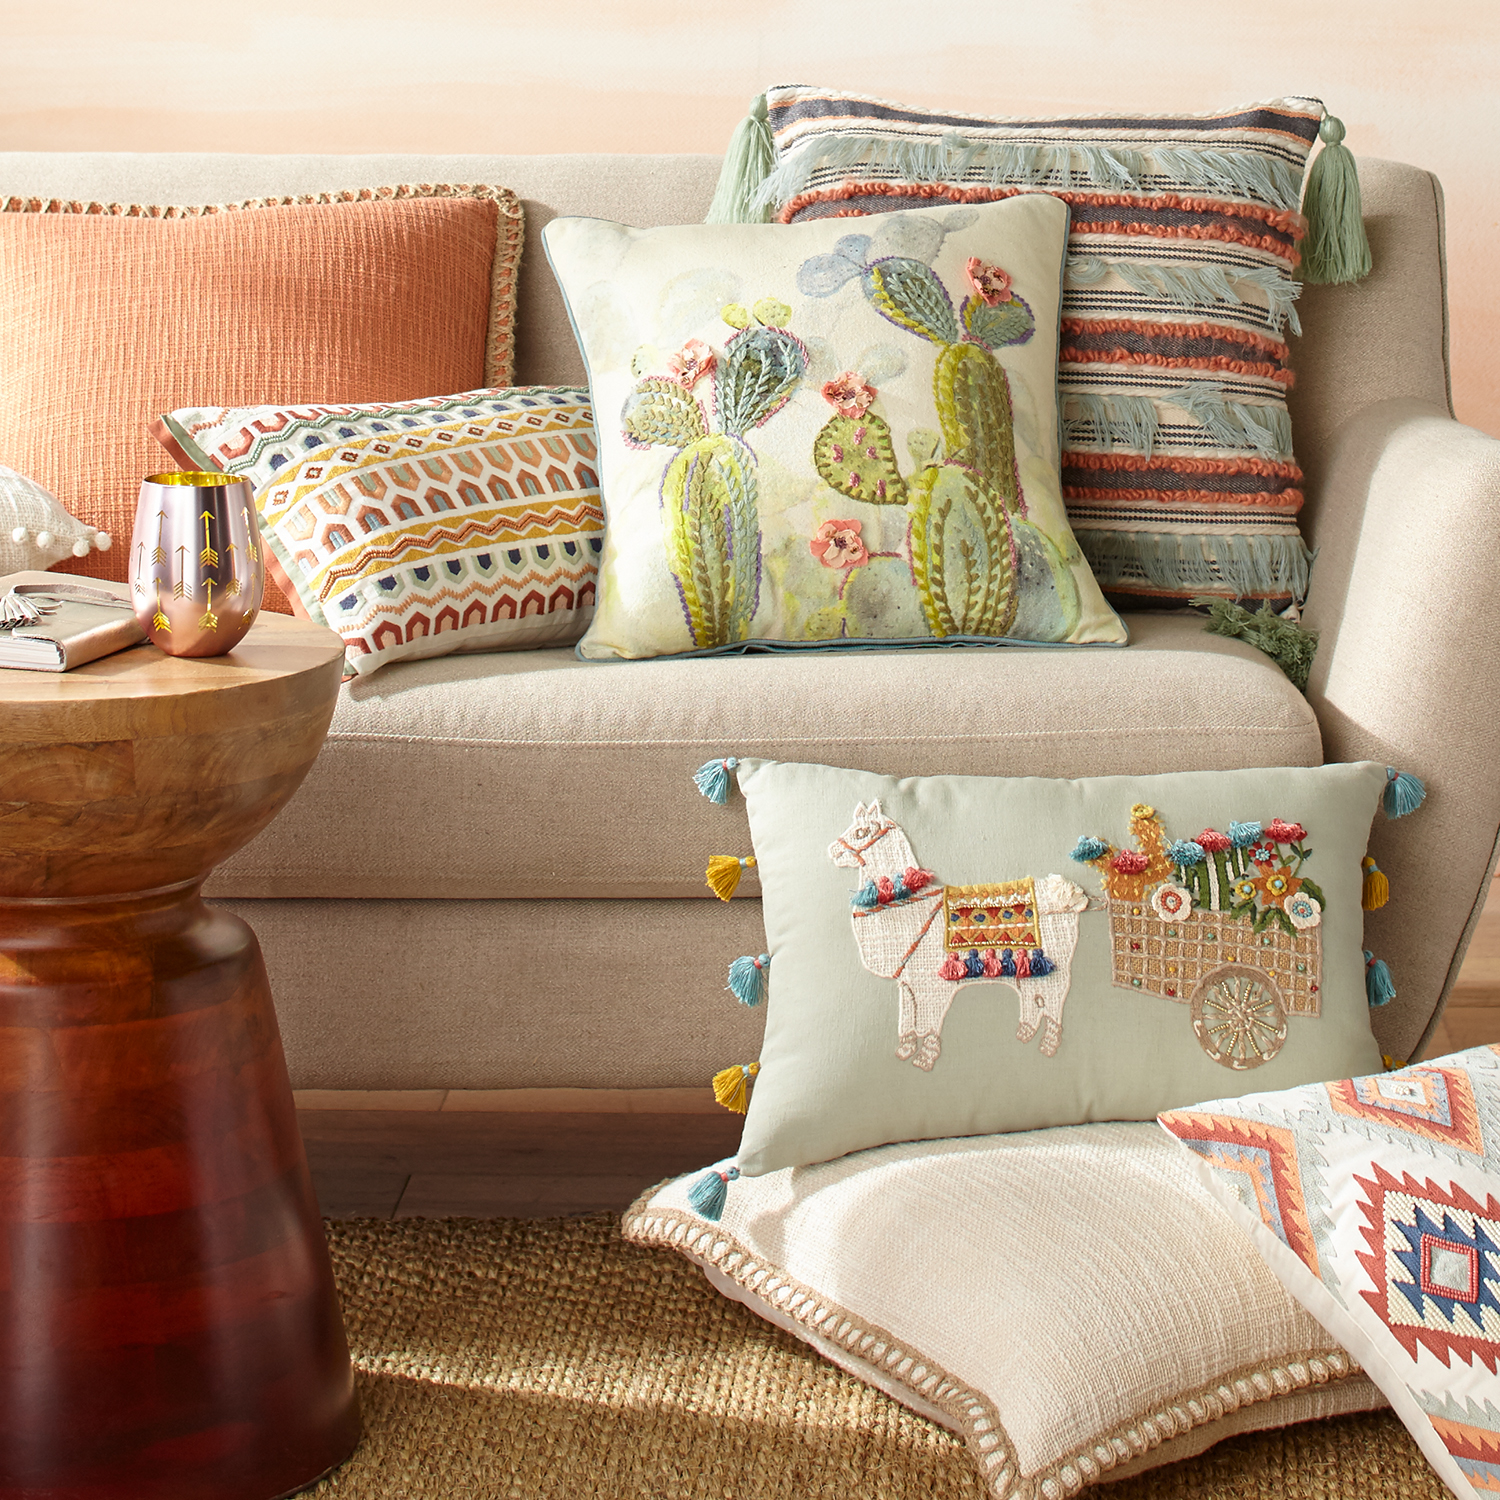 Fringed Textured Striped Pillow